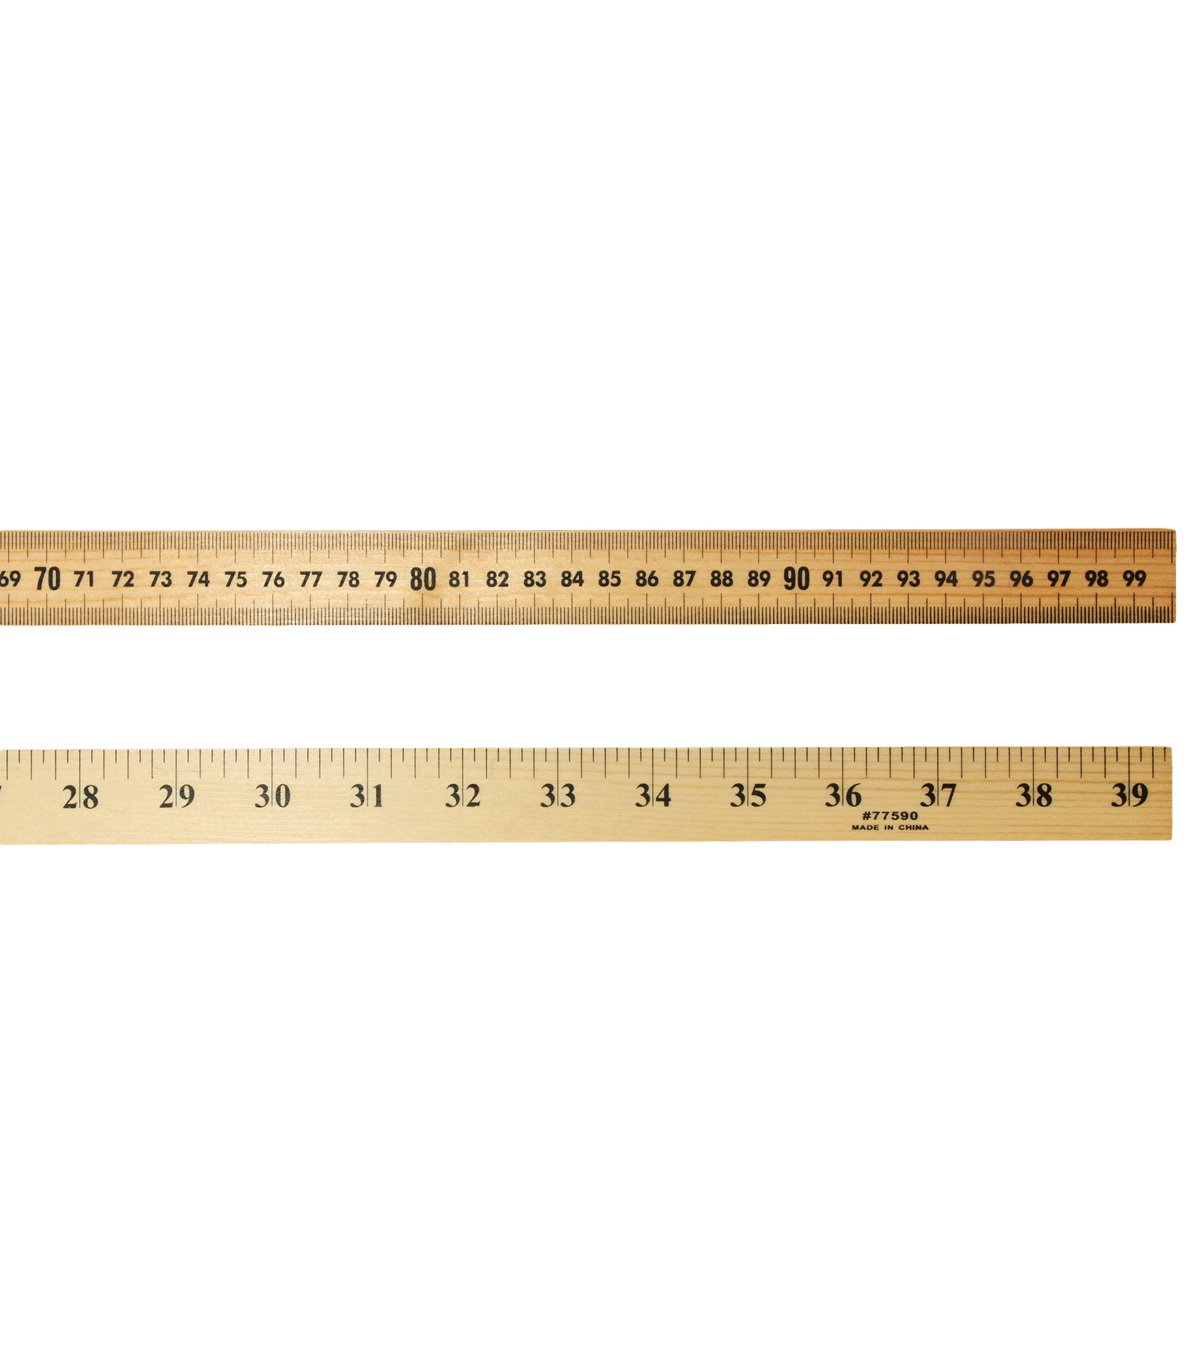 graphic about Printable Meter Sticks called Charles Leonard Meter Adhere with Storage Gap, Pack of 6